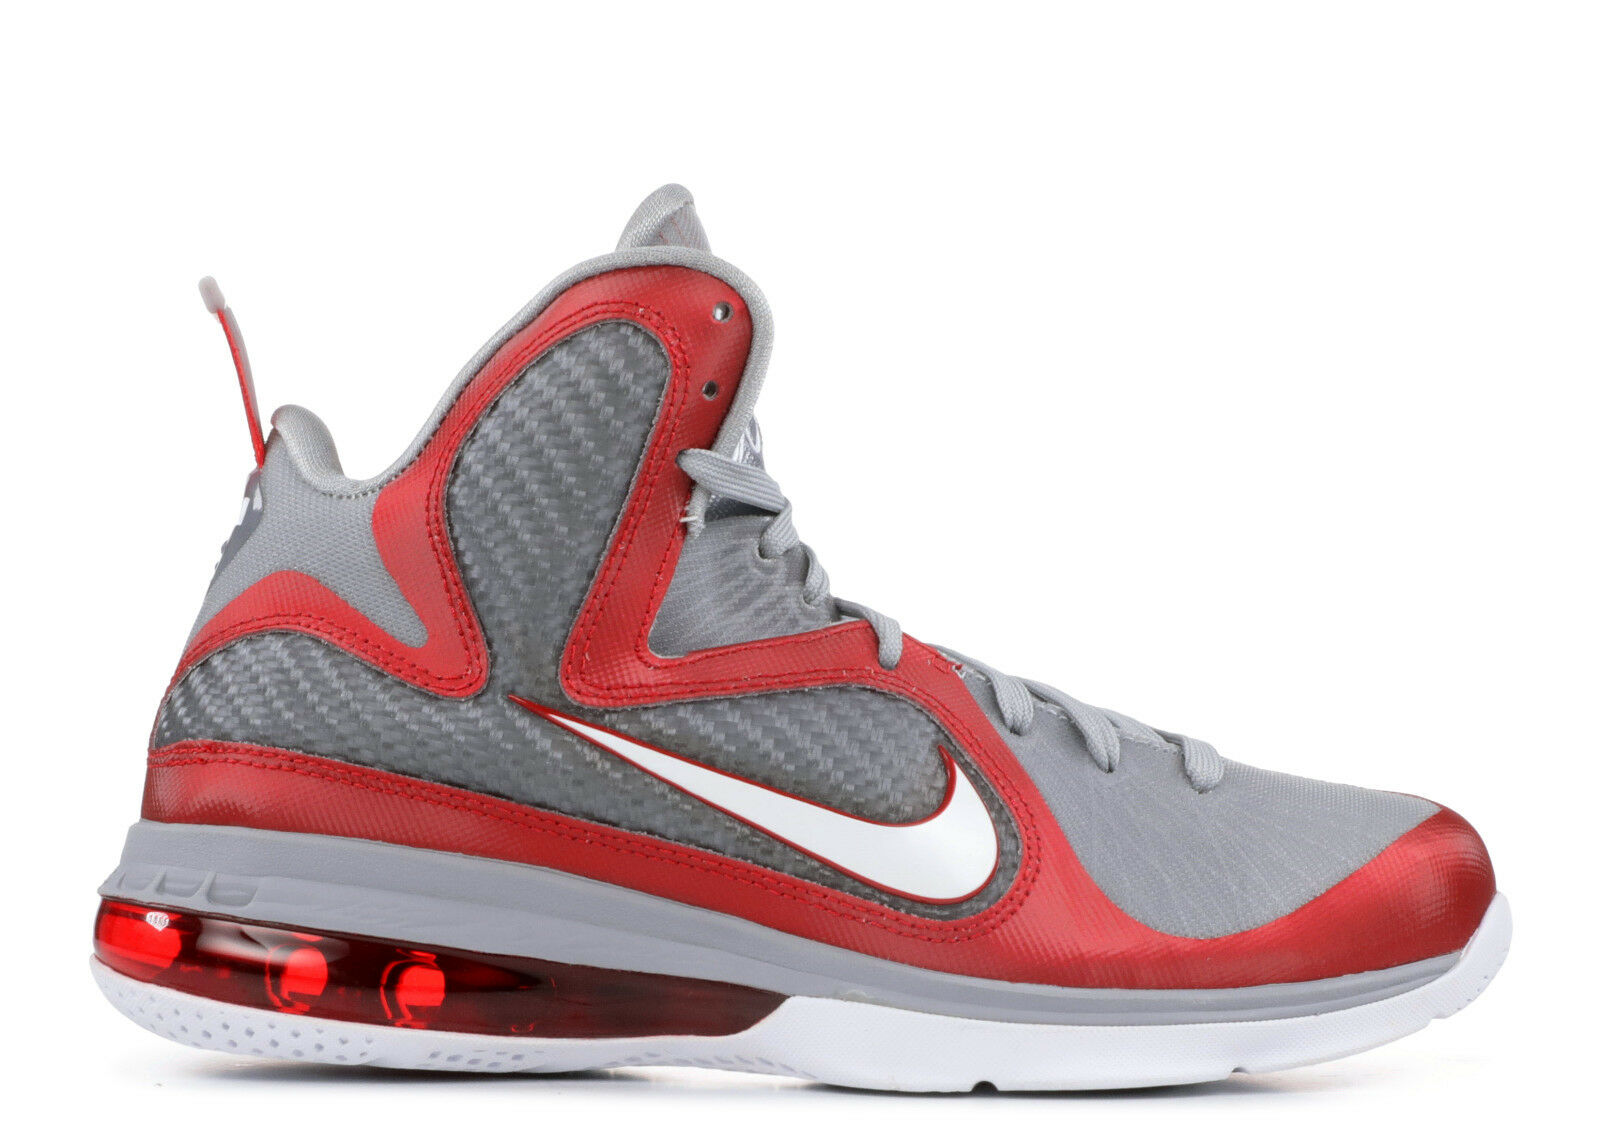 NIKE LEBRON 9 IX OHIO STATE BUCKEYES 11 GREY RED WHITE 469764-601 JAMES OSU